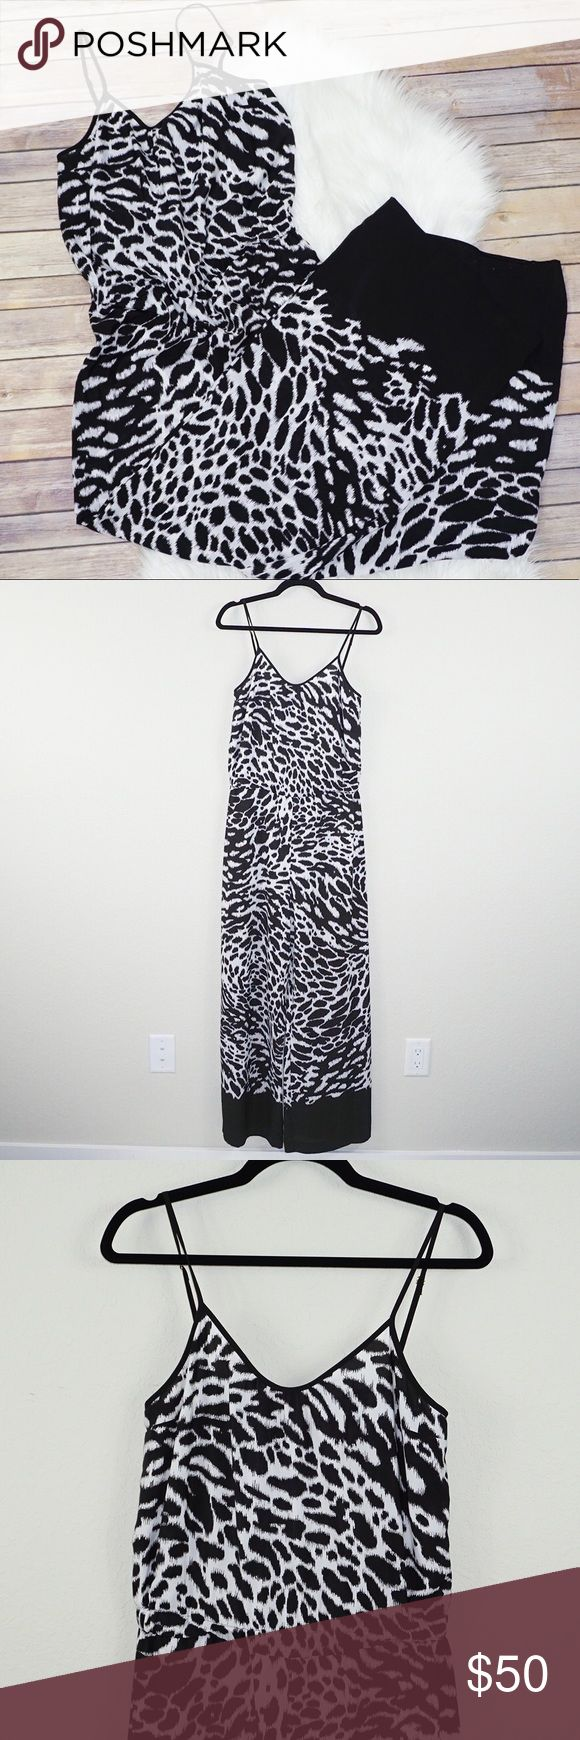 Michael Kors Animal Print Jumpsuit ✨Condition: Excellent, Pre-owned ✨Features: Adjustable straps. 100% Polyester. Style MH43GGCF15D ✨Feel free to make an offer -or- Add to Bundle to receive an exclusive discount! Michael Kors Pants Jumpsuits & Rompers